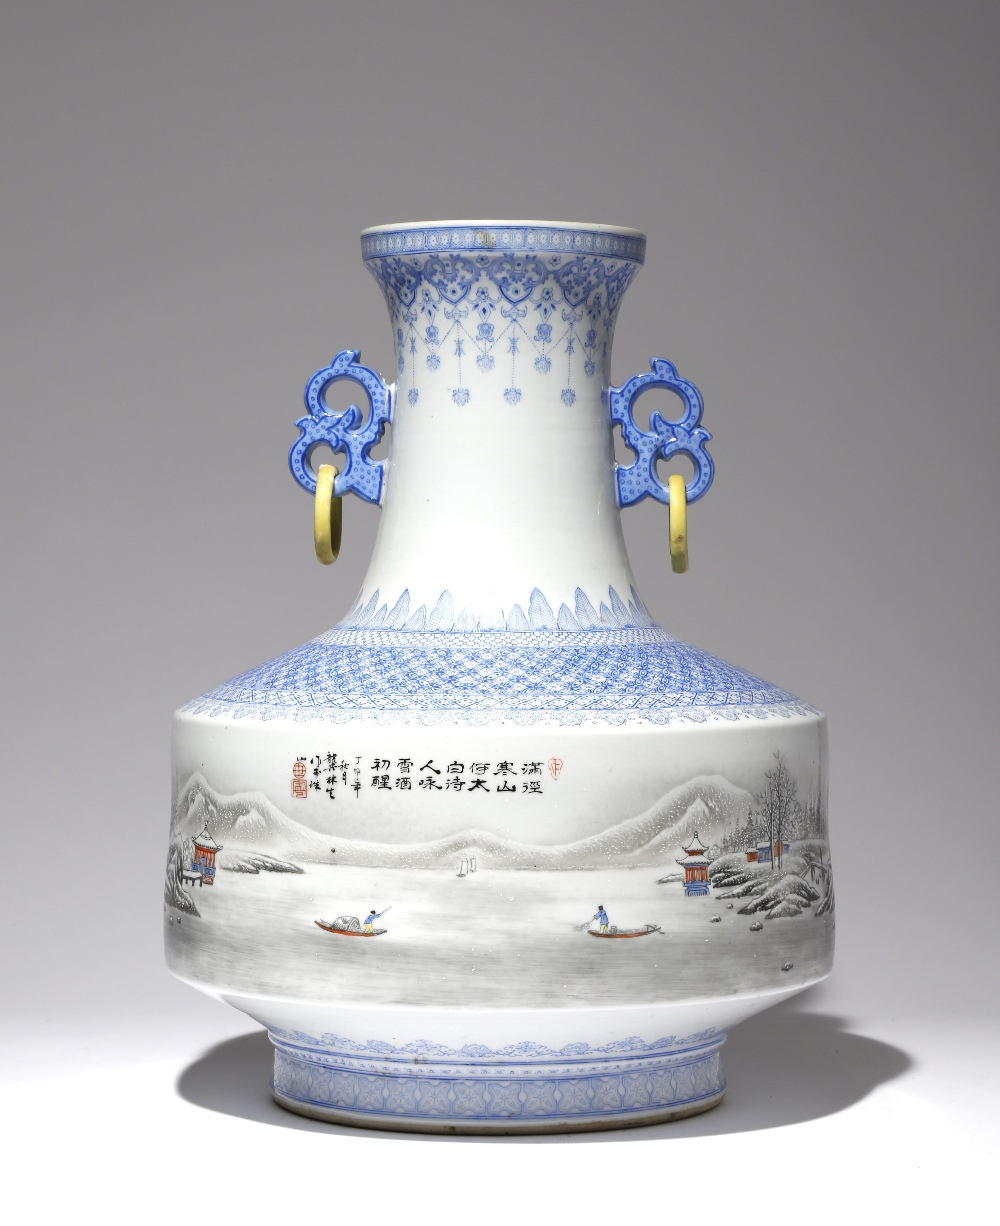 A LARGE CHINESE ENAMELLED 'WINTER LANDSCAPE' VASE 20TH CENTURY Painted with a continuous scene - Image 2 of 2